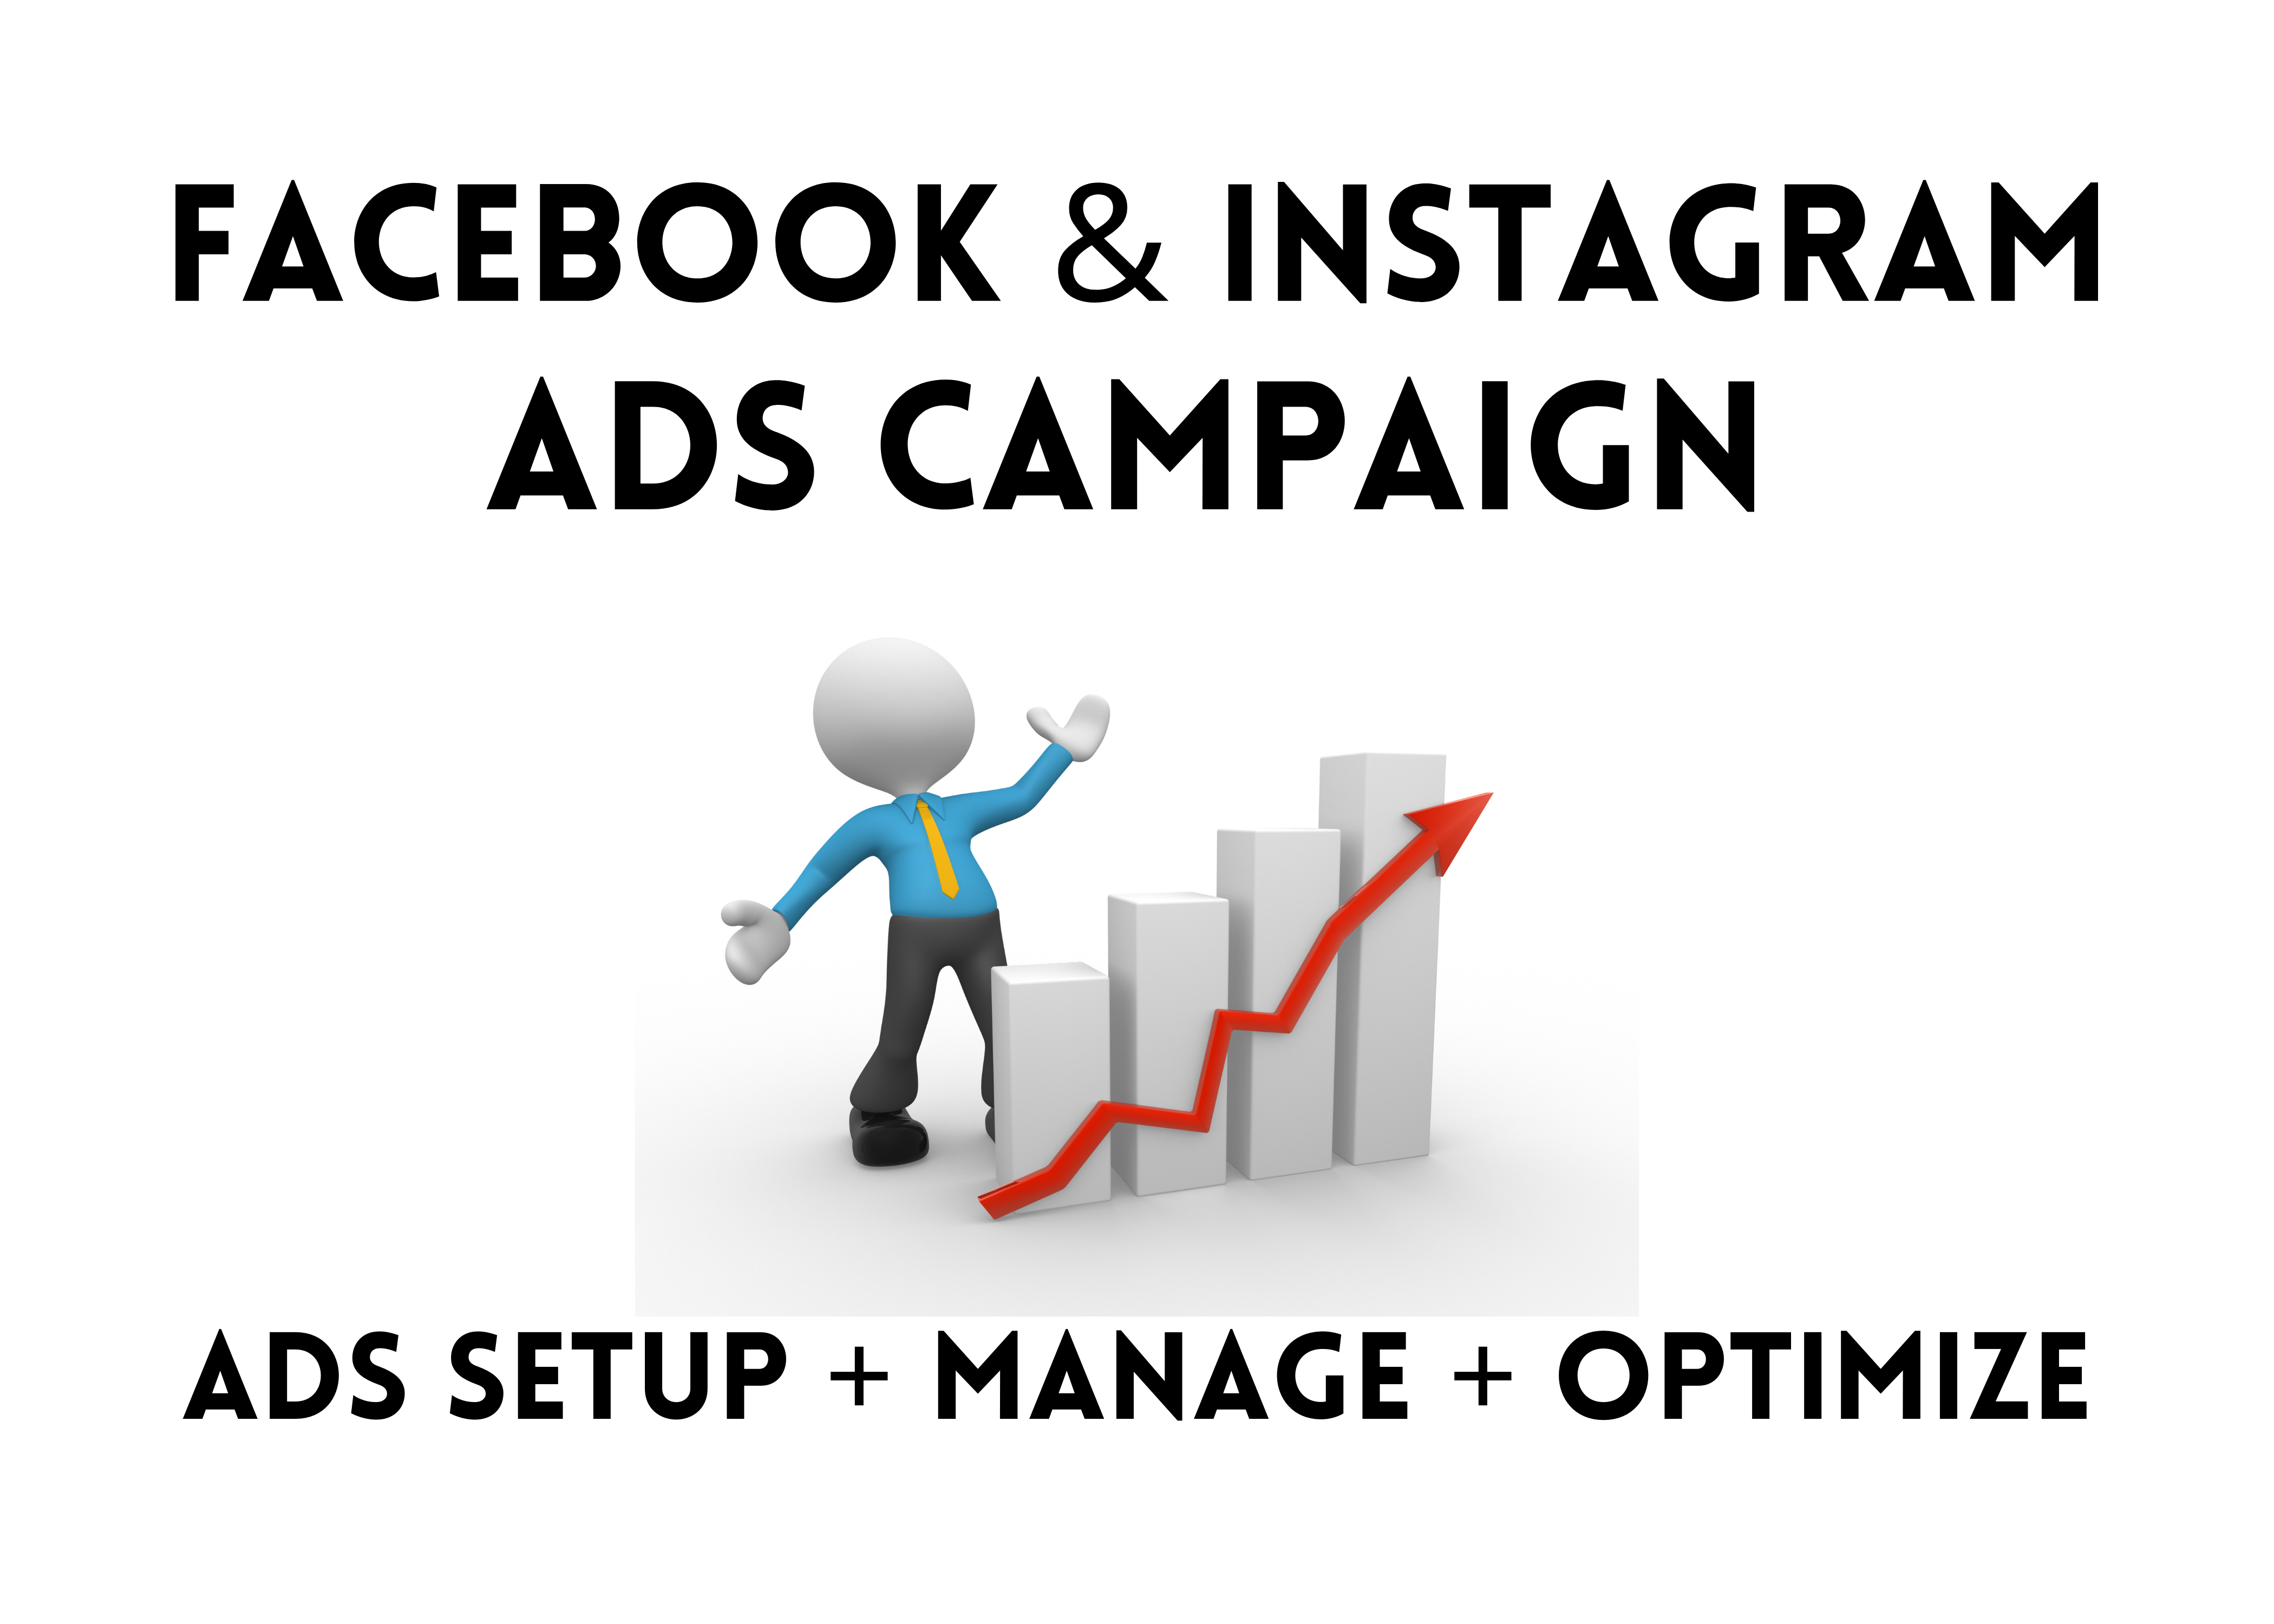 I will be your facebook ads campaign manager for your business or service